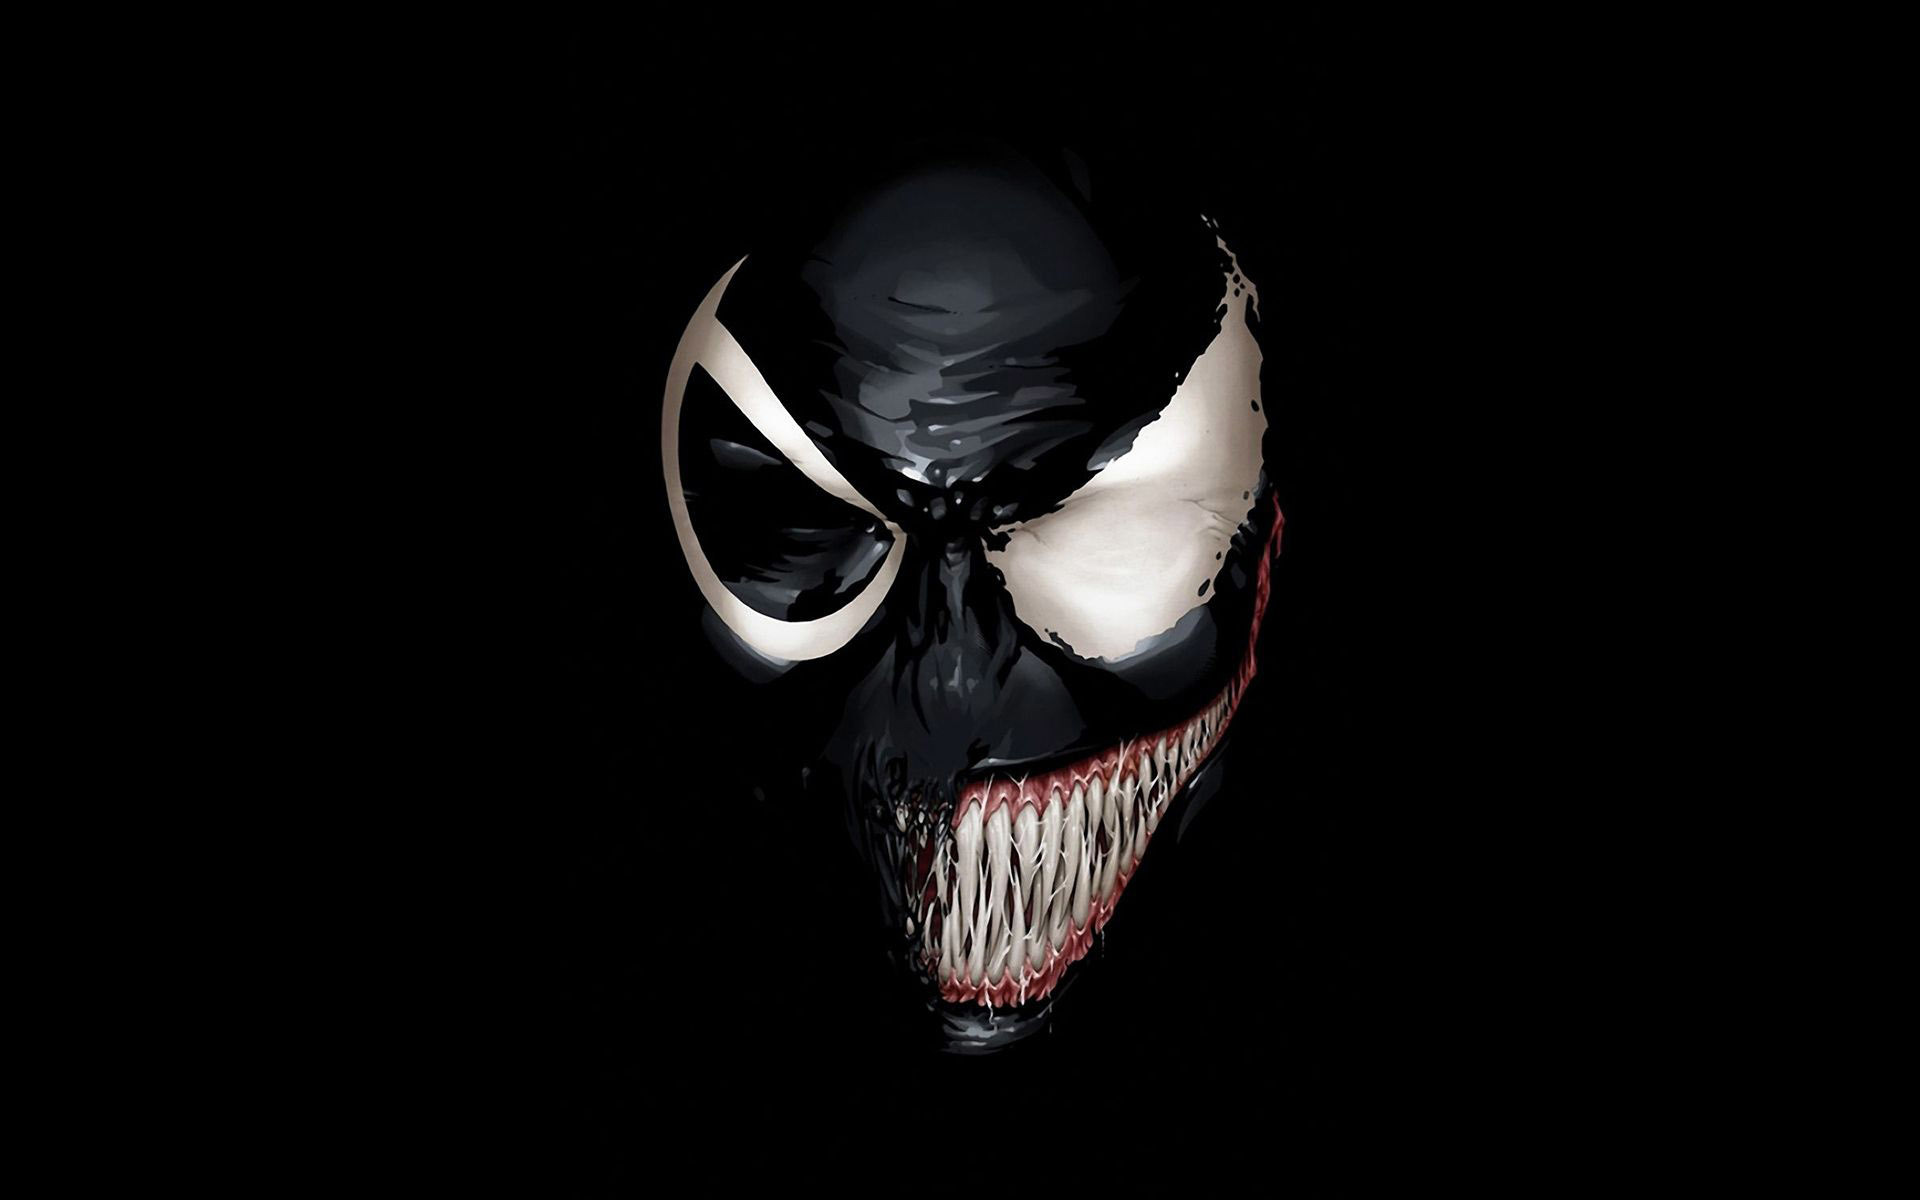 AntiVenom wallpapers Comics HQ AntiVenom pictures K